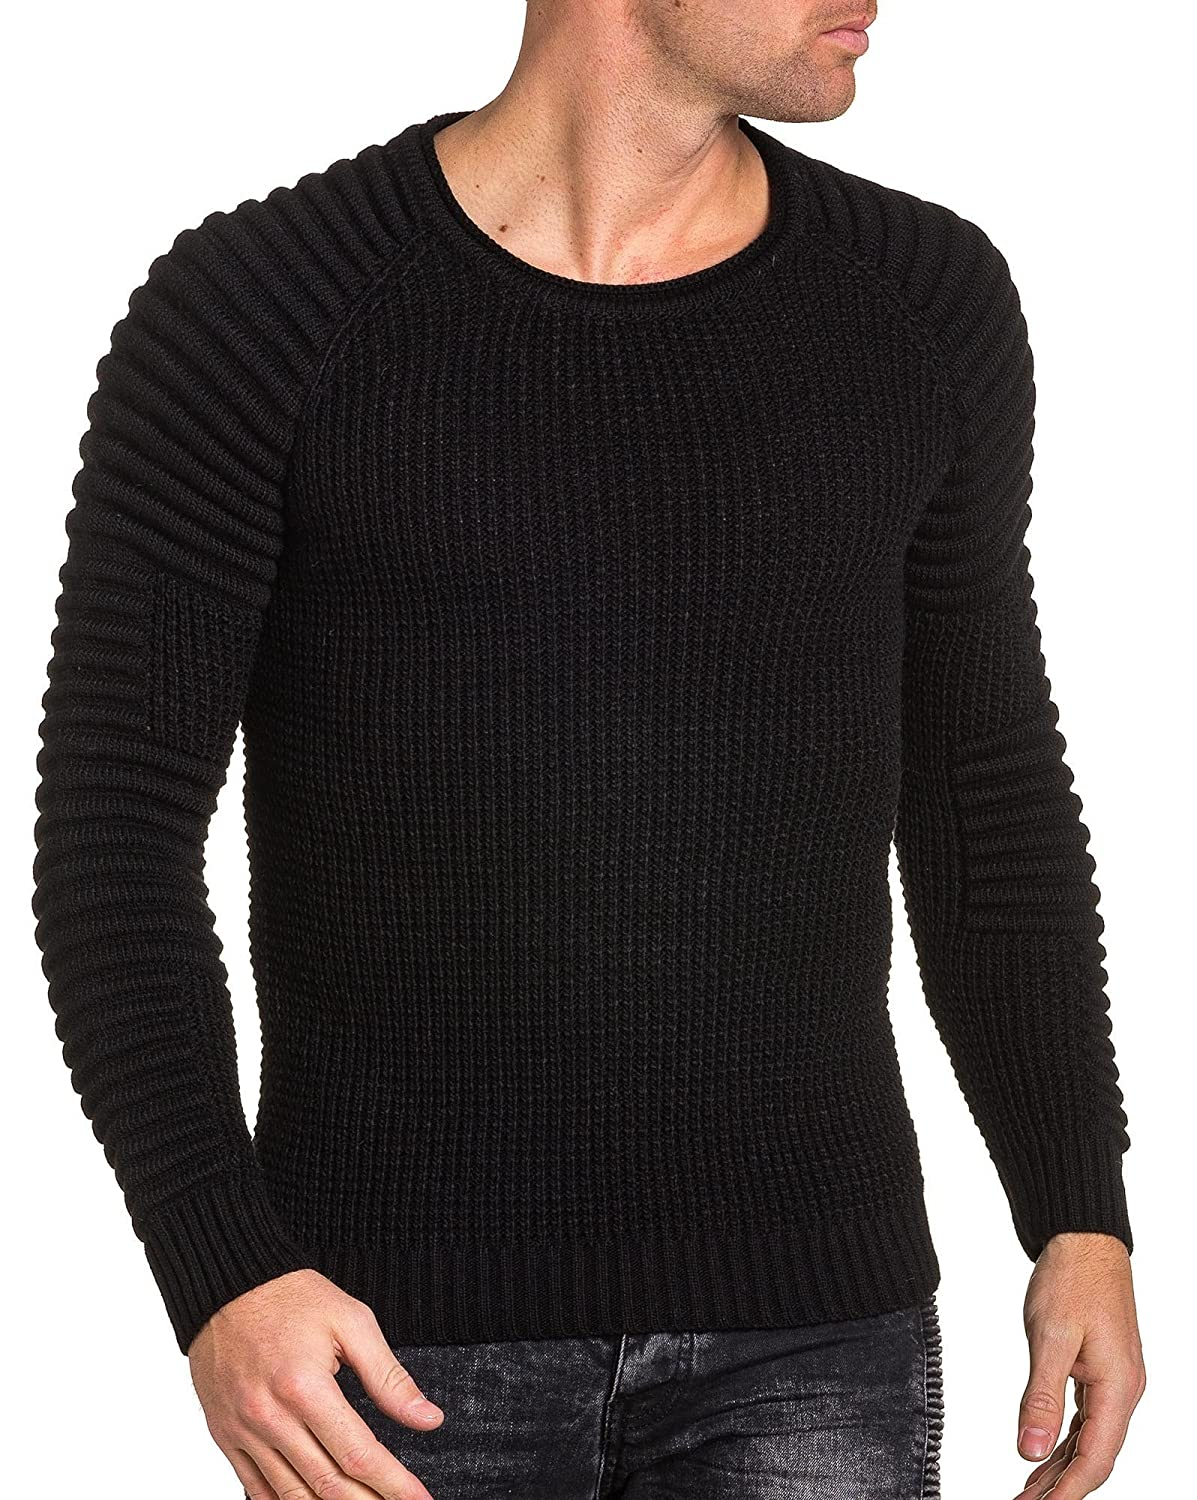 BLZ jeans - Pullover man black ribbed knit